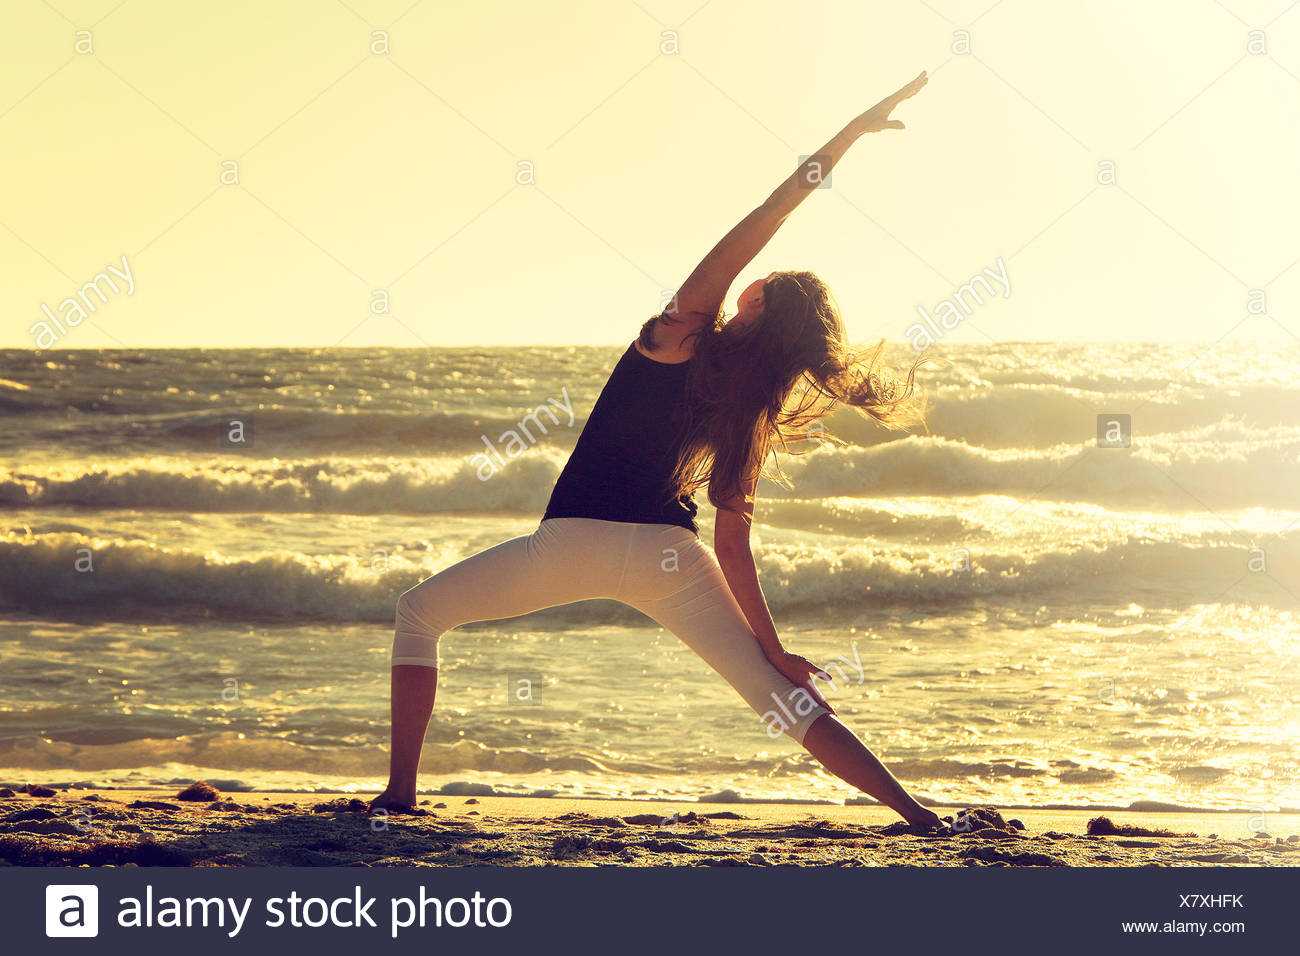 Woman practising reverse warrior pose on beach - Stock Image